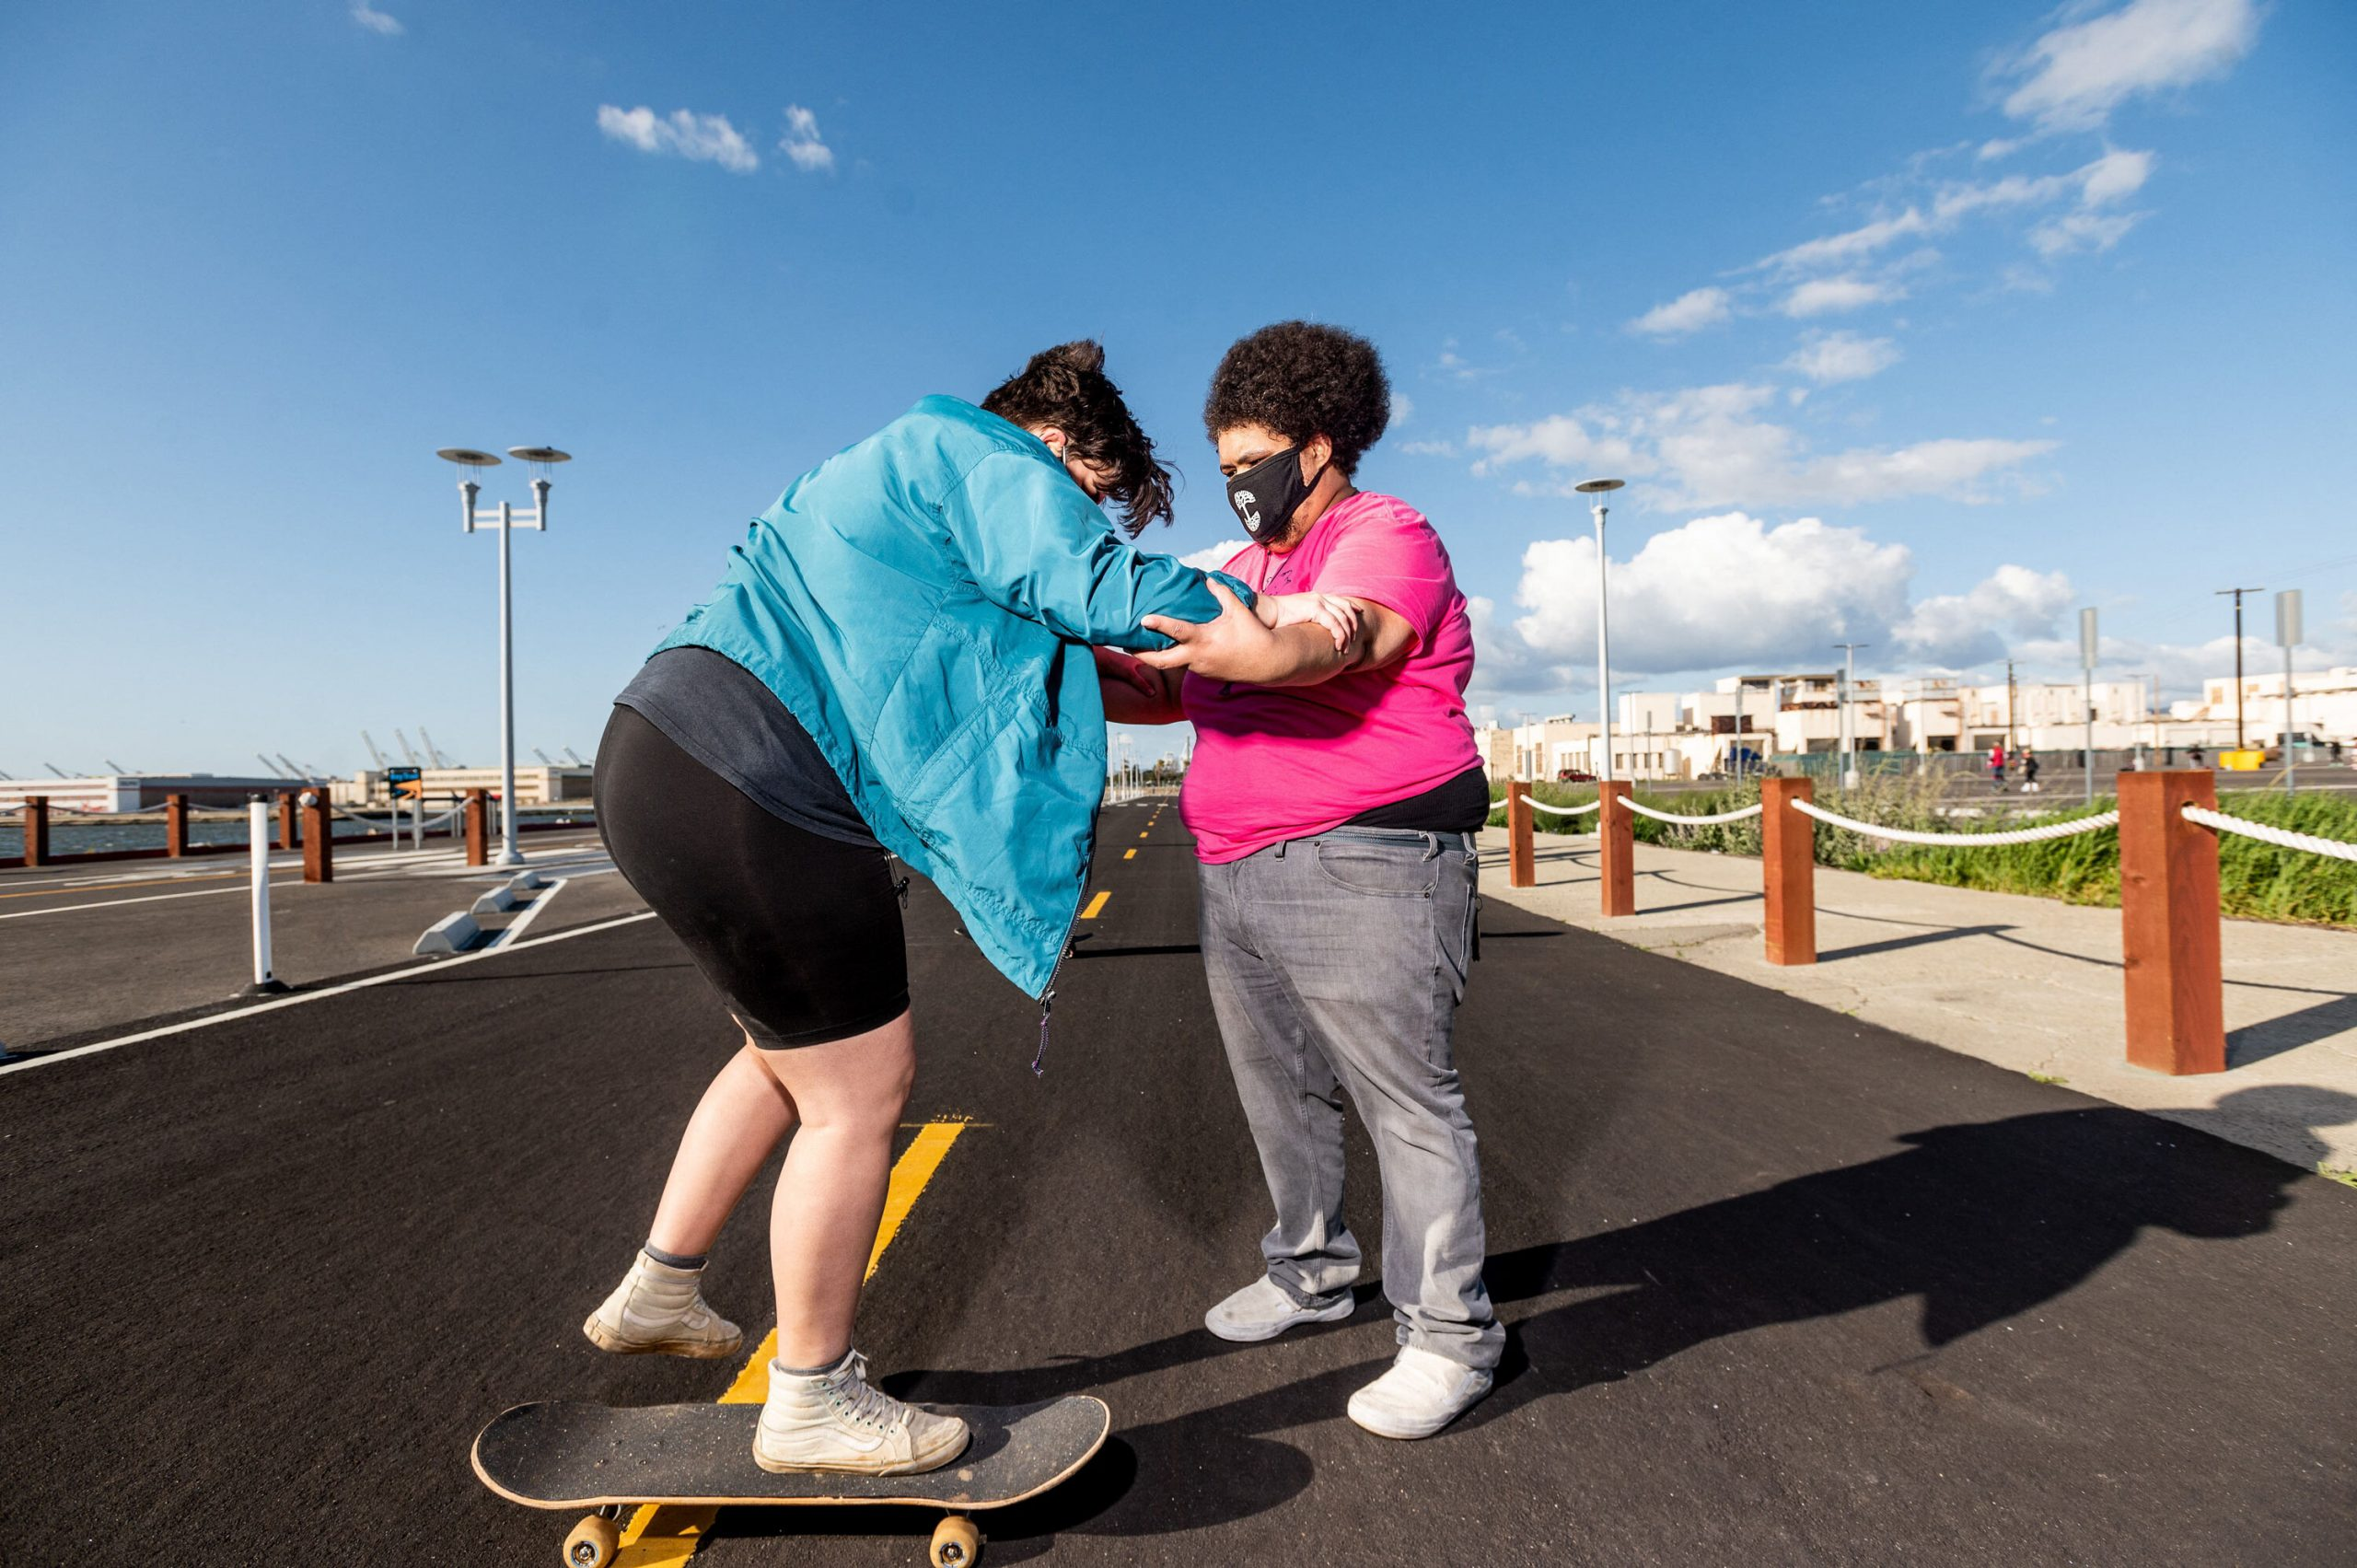 Overweight skateboard club is helping to get everyone in on the fun